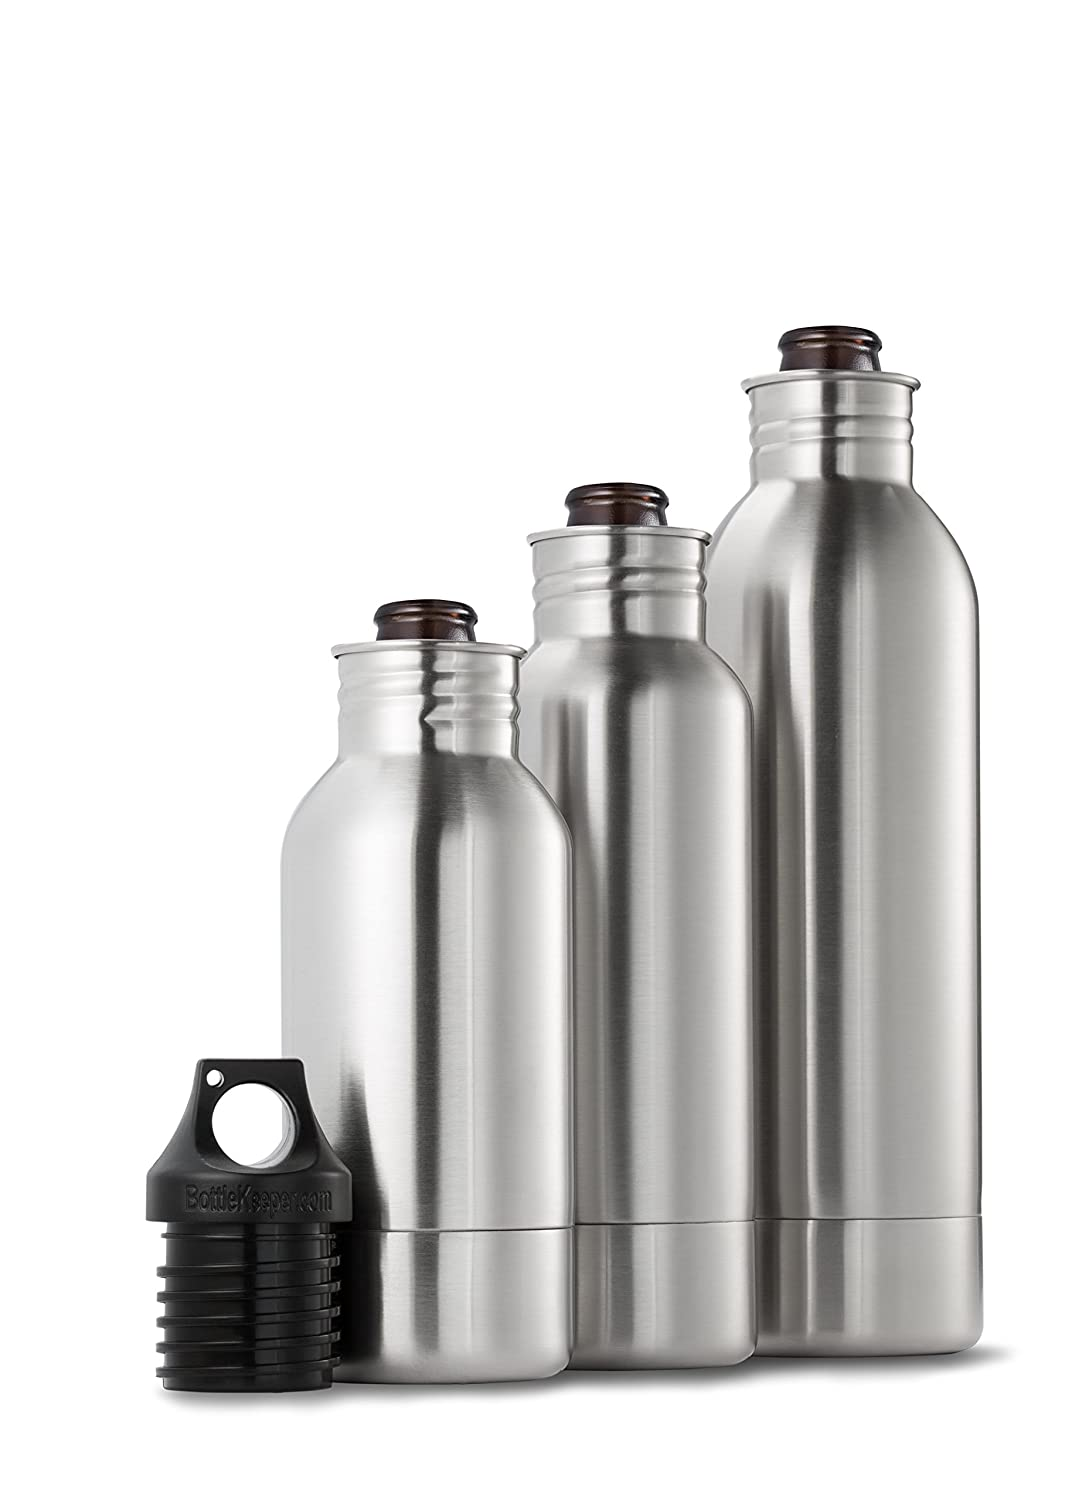 Get Up to 10% Off BottleKeeper Items at Amazon + Free Shipping w/Prime